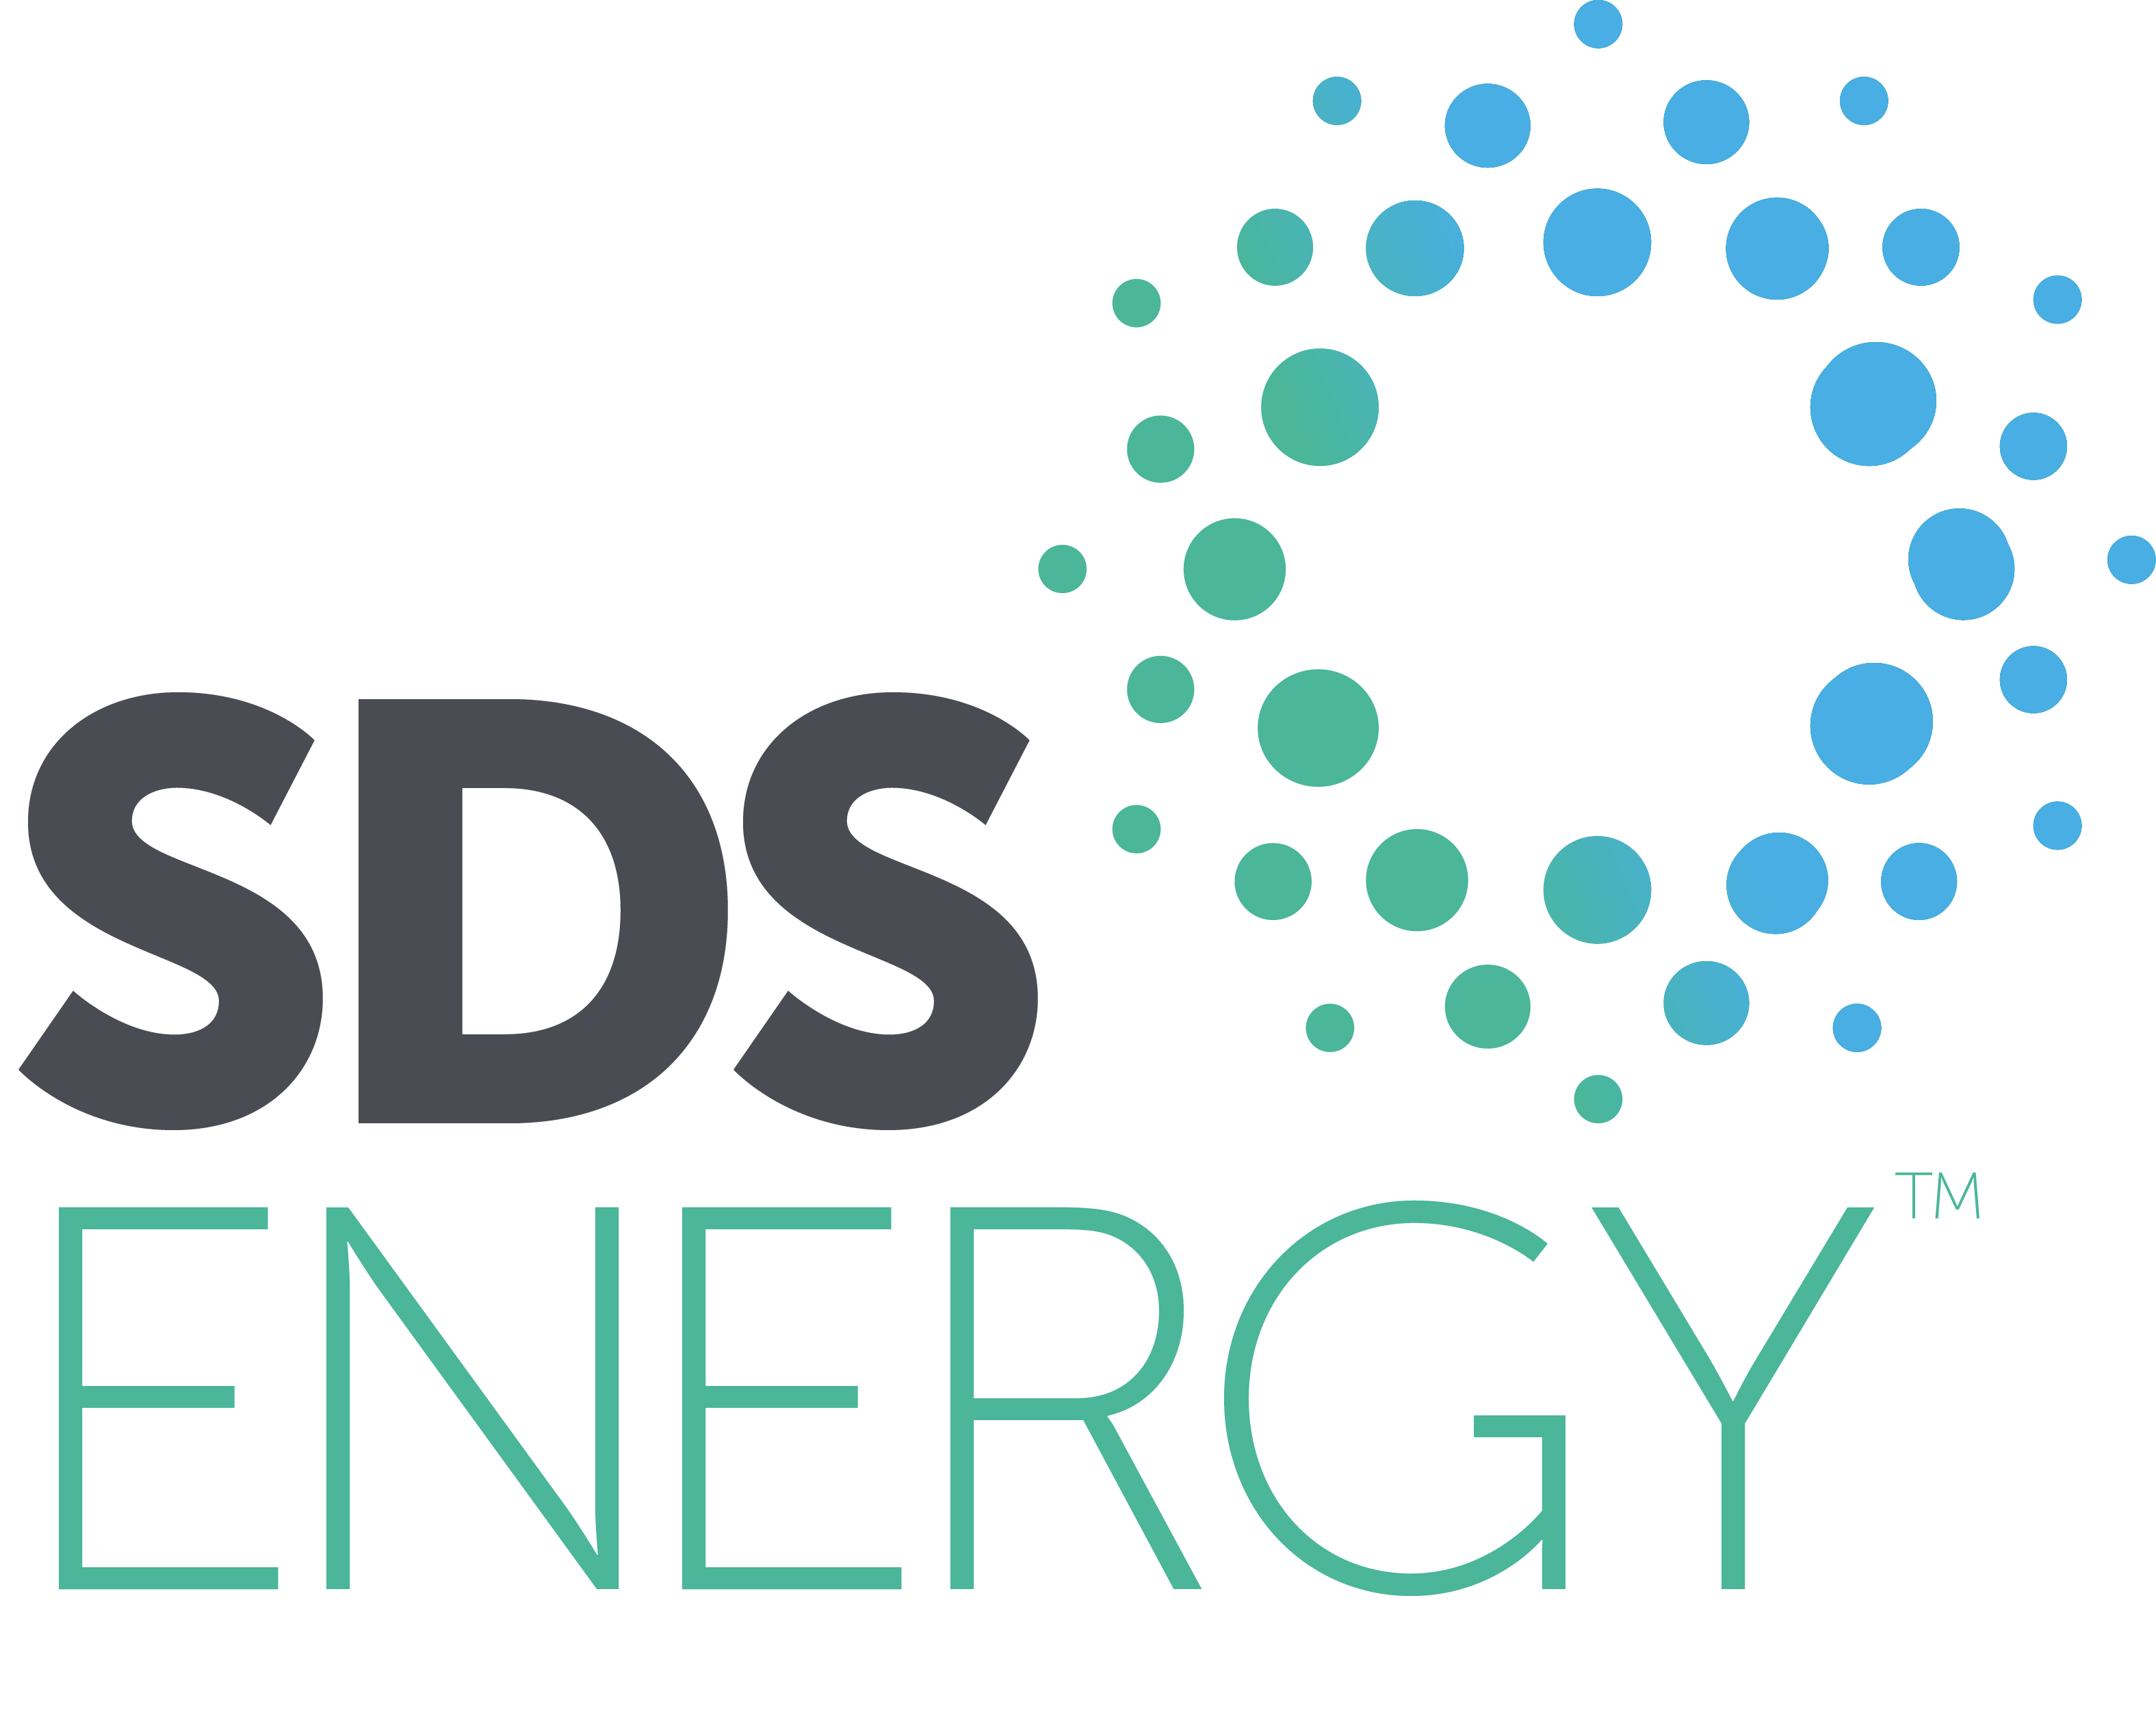 sds energy partner